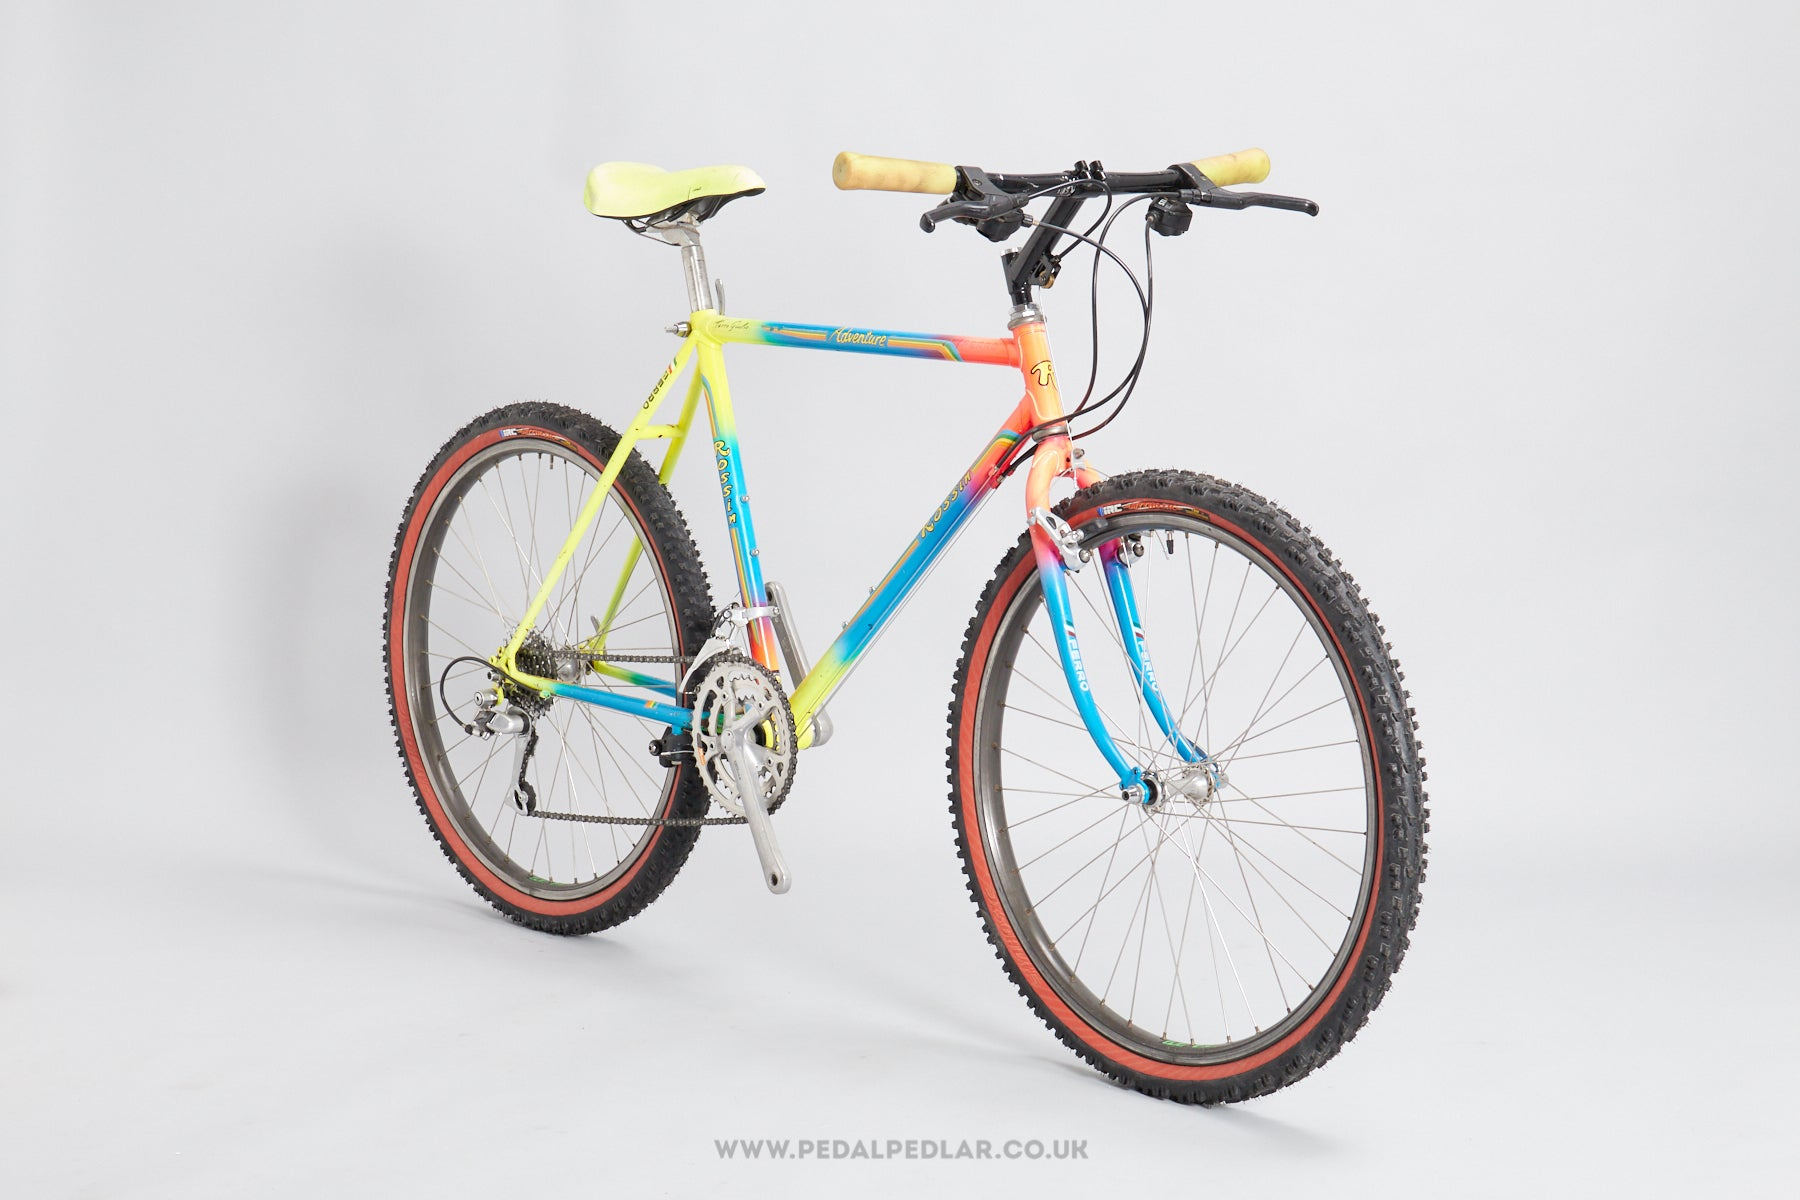 Classic and Vintage Bikes For Sale – Vintage Road Bikes